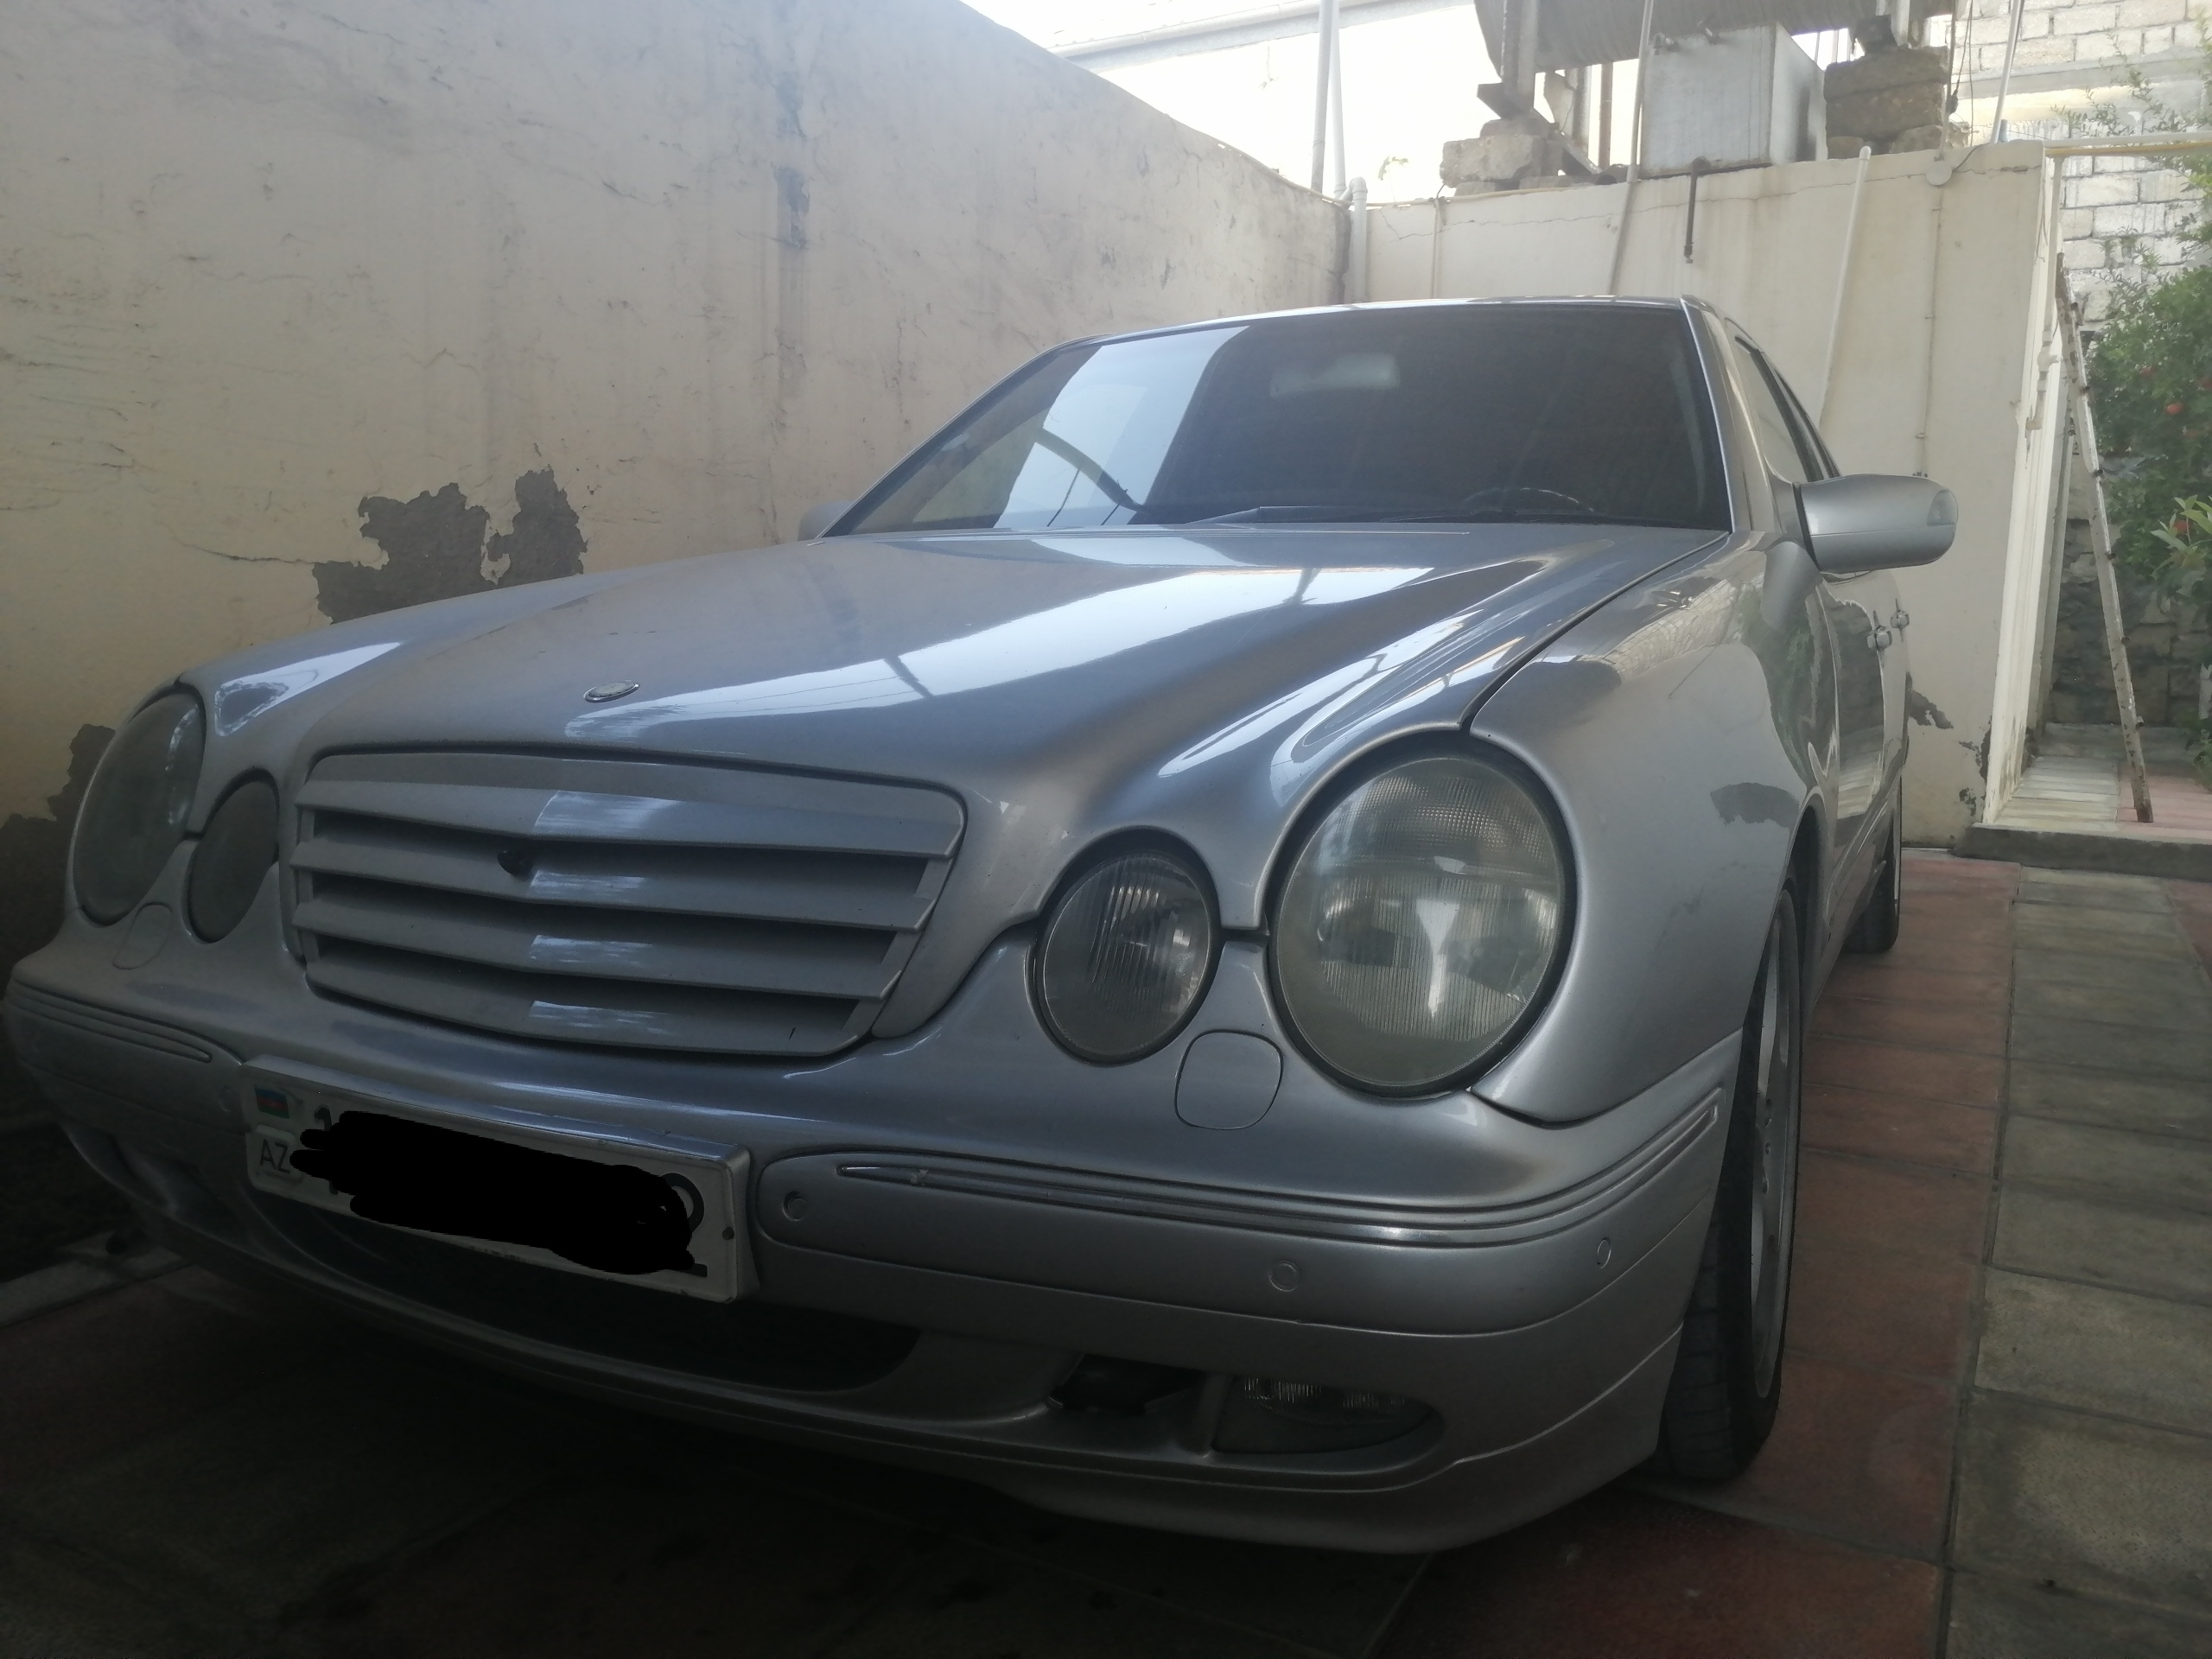 Mercedes-Benz E 320 3.2(lt) 2001 Second hand  $8000